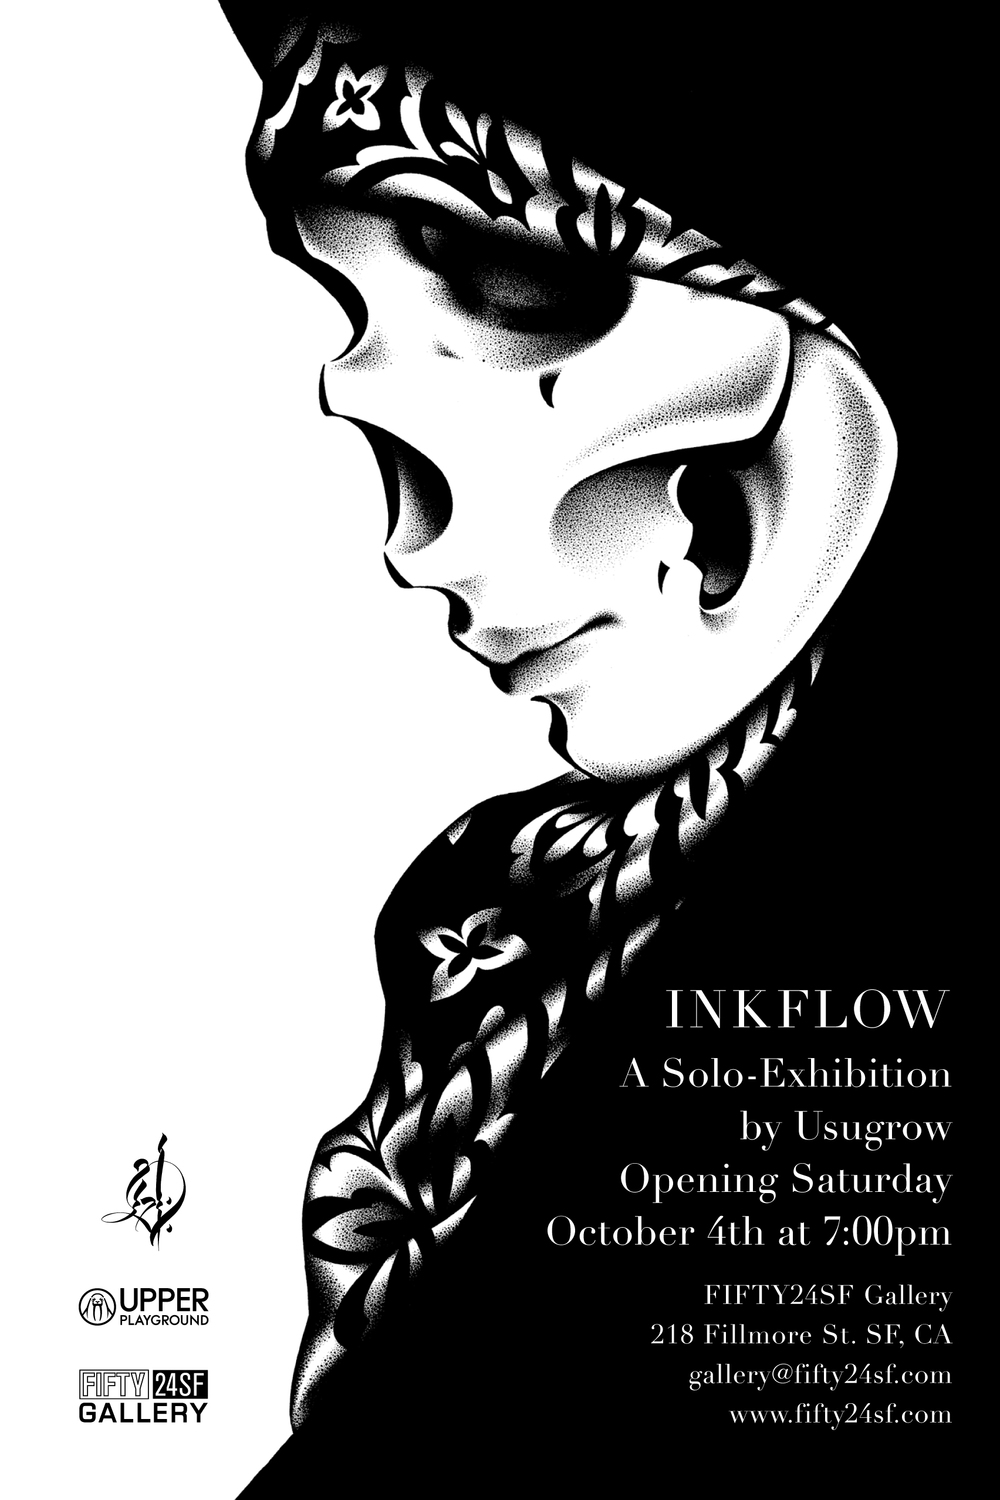 INKFLOW - BY USUGROW